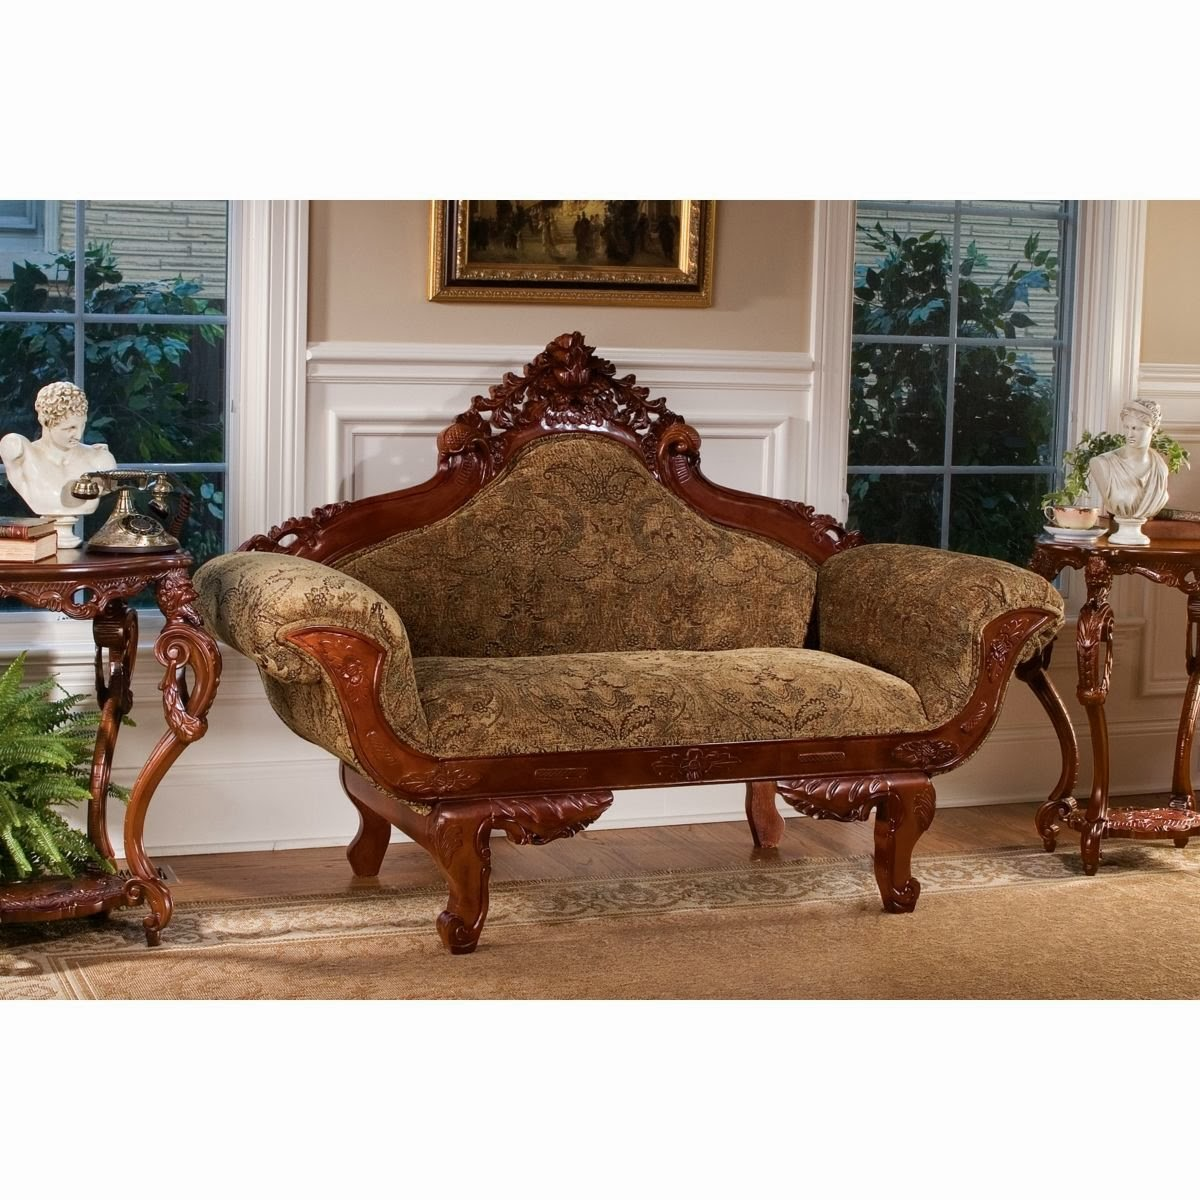 Antike Sofas & Loveseats Antique Victorian Sofa Set Antique Victorian Sofa